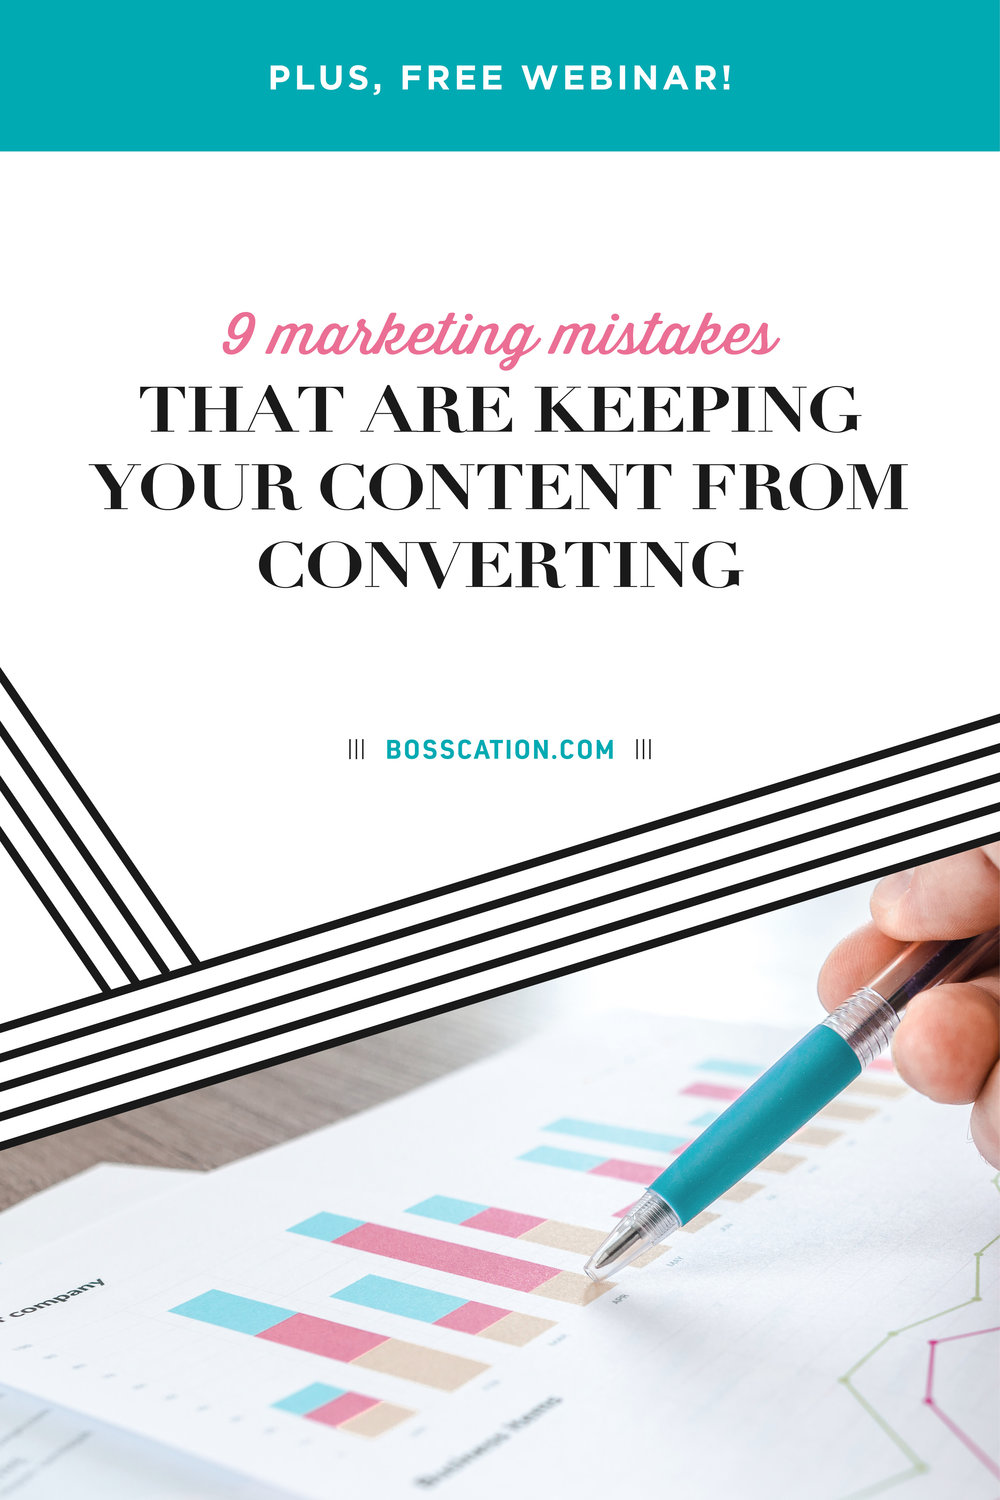 When writing blog posts, filming videos, sending newsletters or other content marketing, you need to ensure that your efforts are converting! Whether that's sales, more followers, an engaged email list, etc, avoiding these 9 mistakes will help your content be more effective. Make sure you're speaking to the right audience, not teaching your craft (unless you're an infopreneur), tracking your analytics, setting correct goals making relationships, etc.